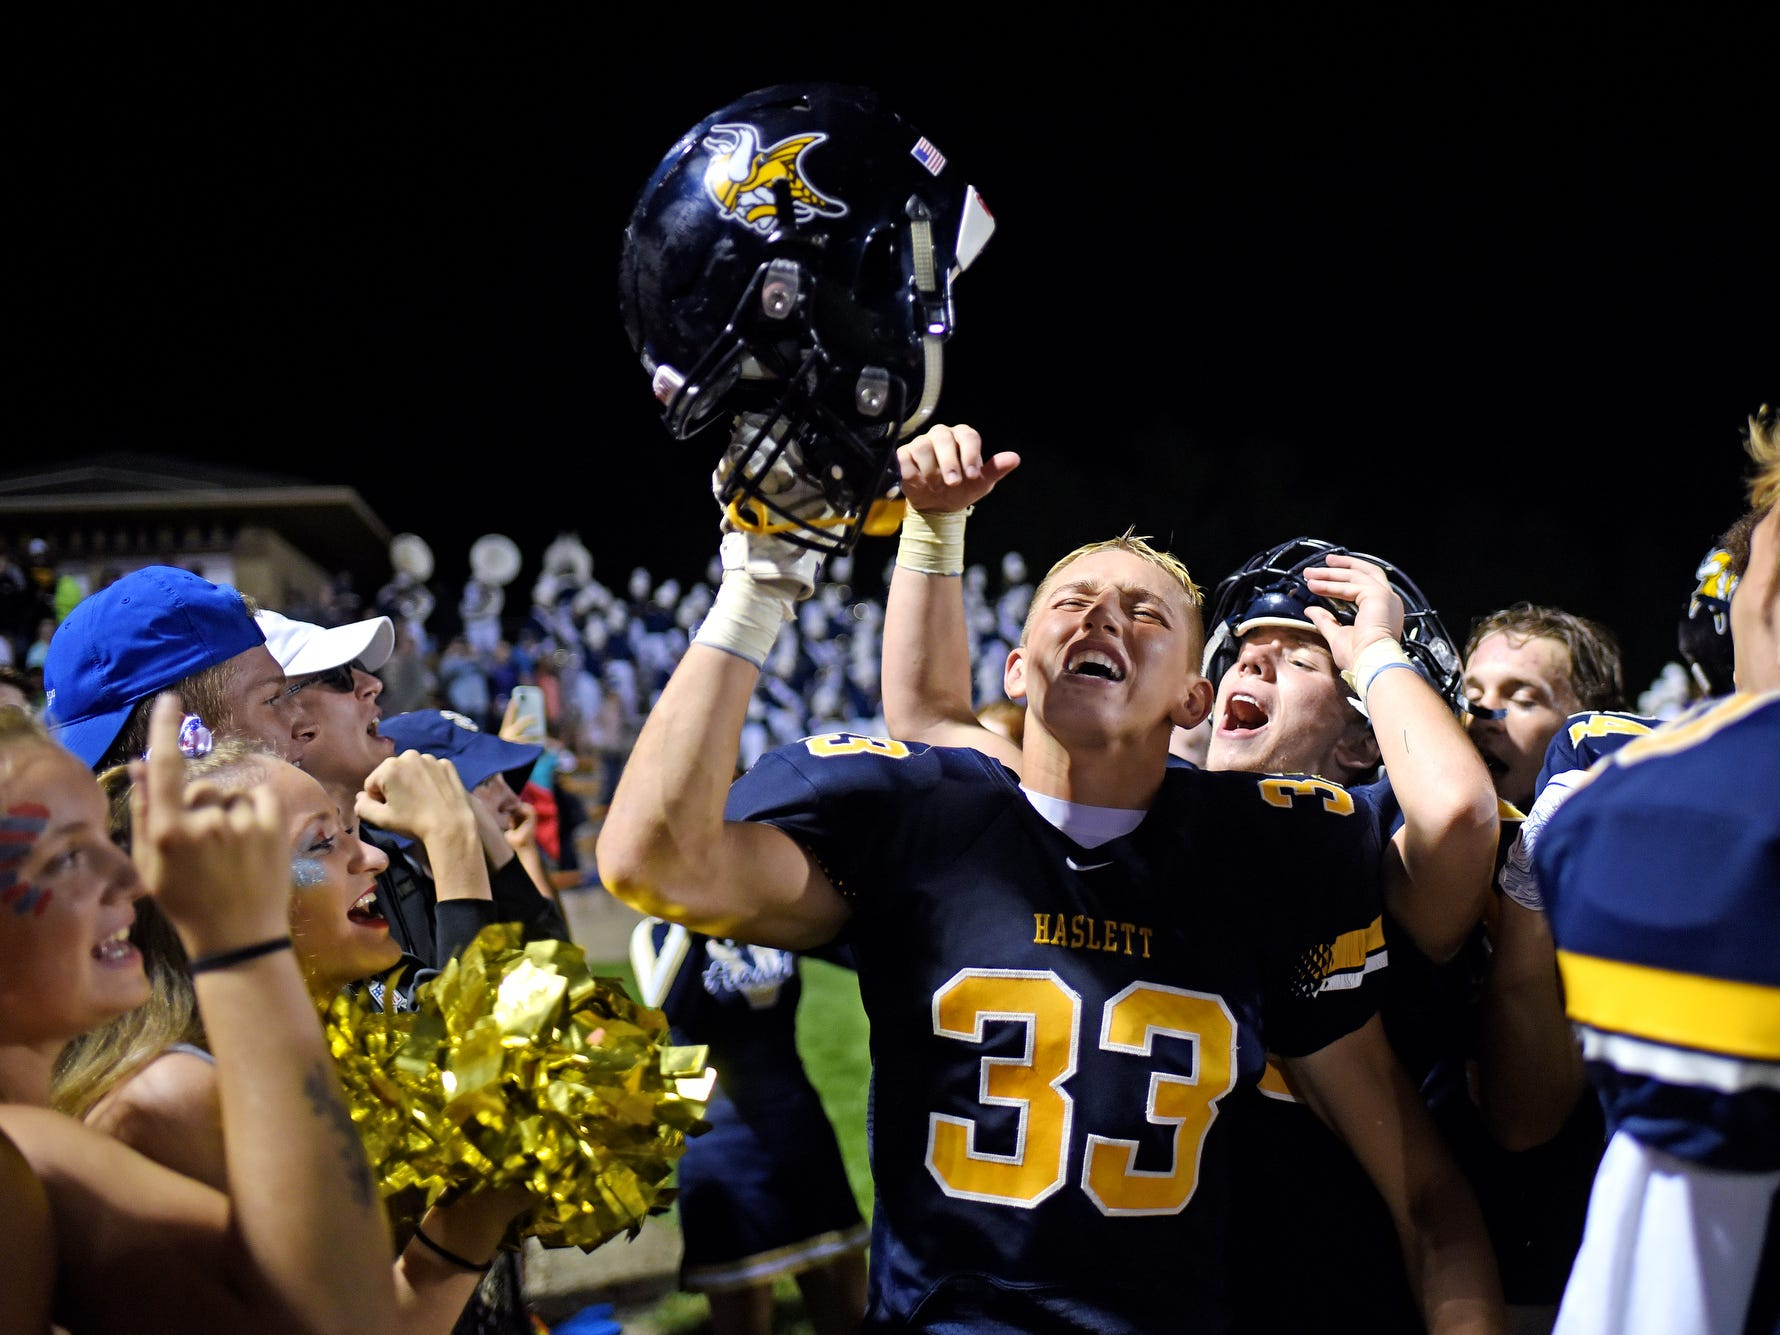 Haslett's Quentin Hernandez, center, celebrates the Vikings victory with teammates and fans after the game on Friday, Sept. 14, 2018, at Haslett High School.